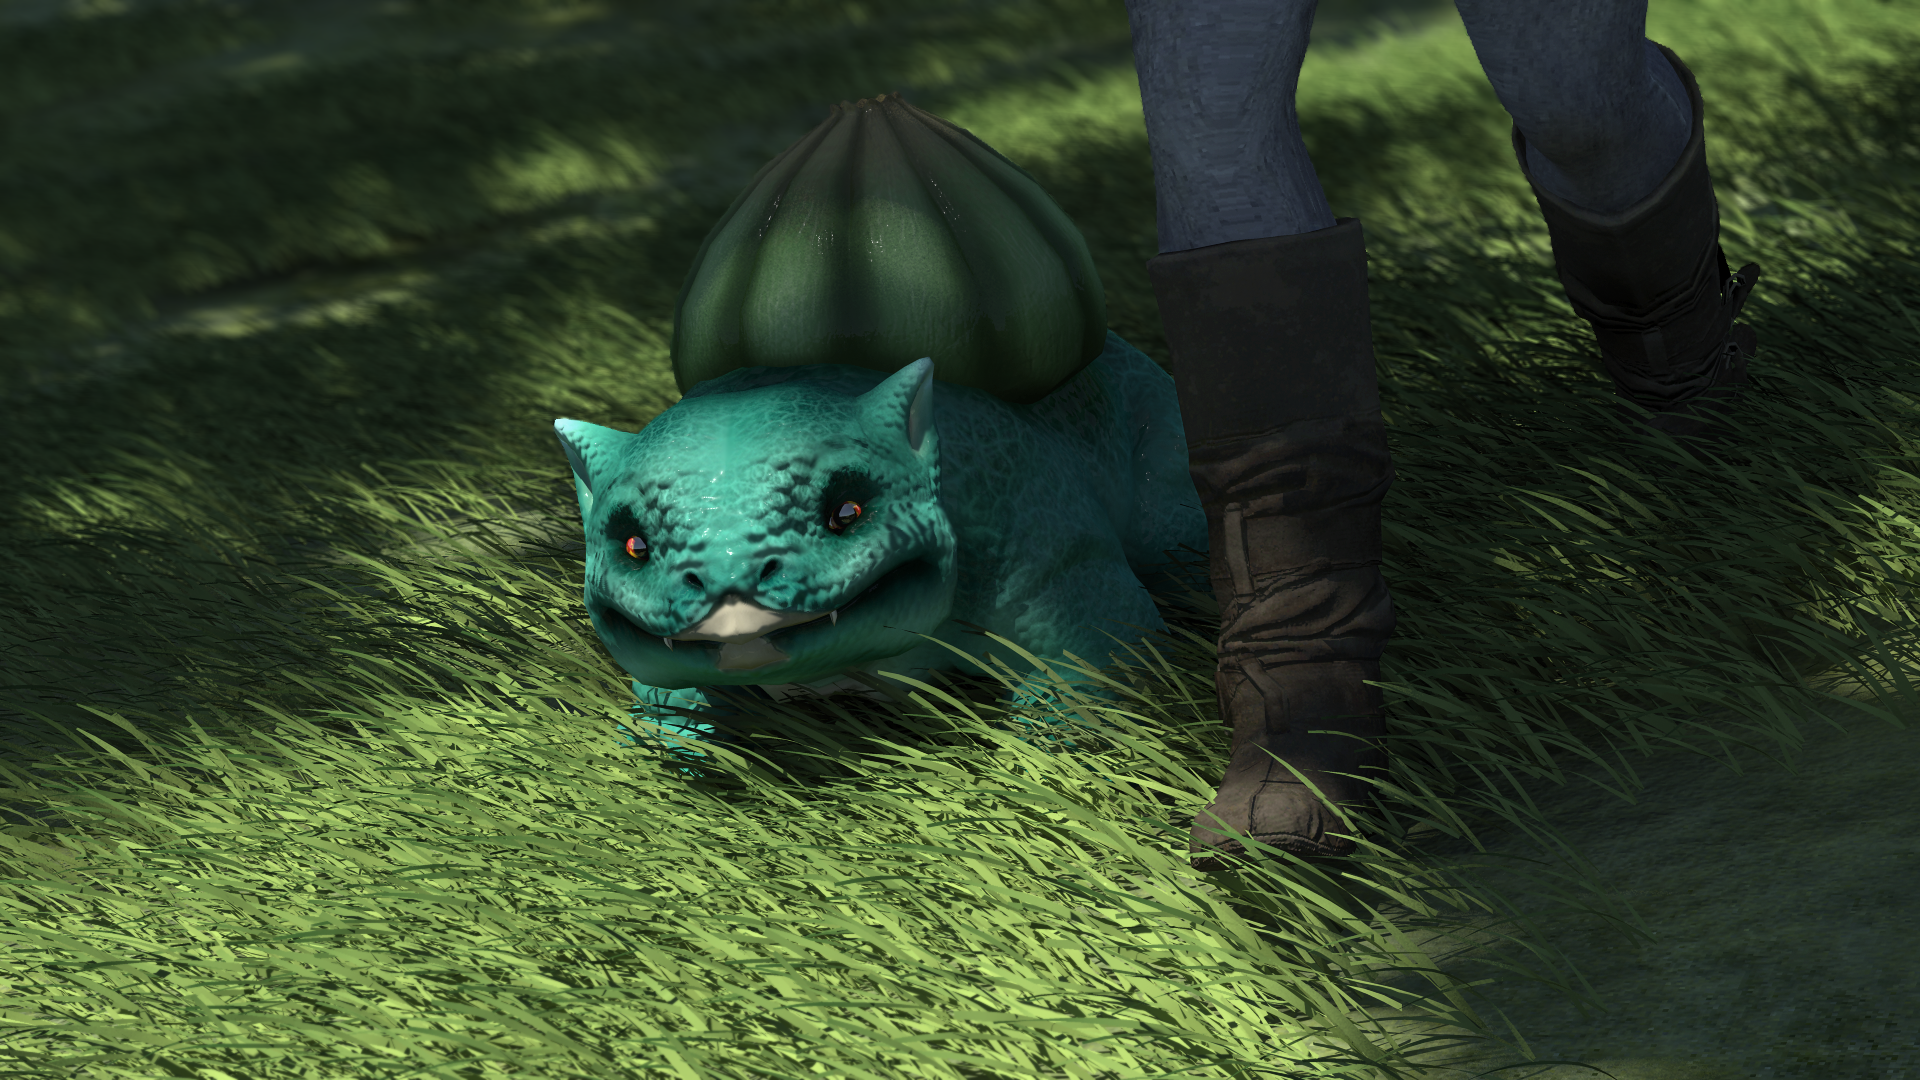 Bulbasaur On A Walk